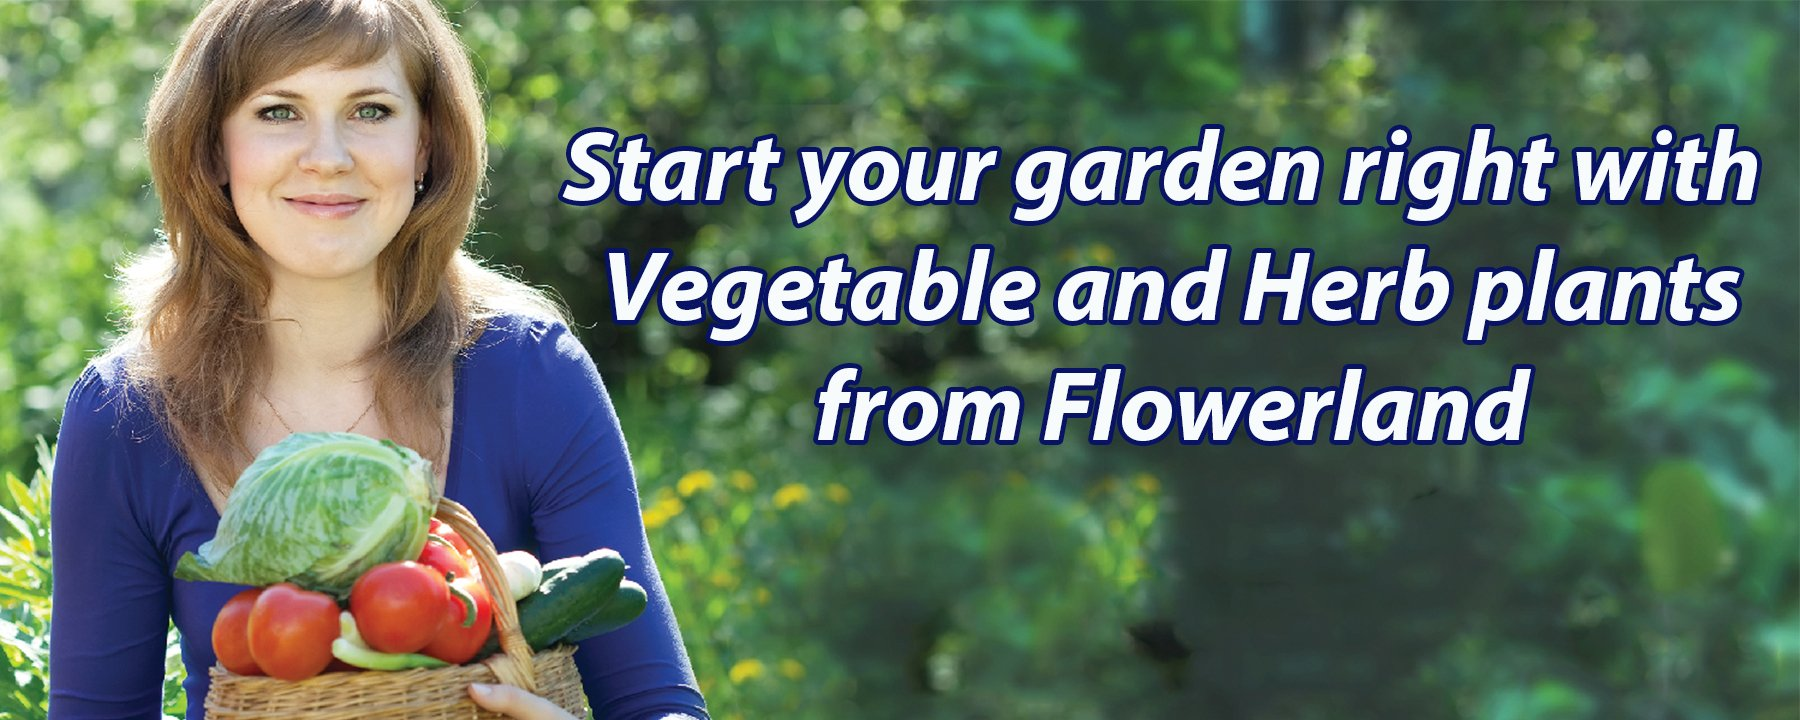 Vegetable and Herb Plants at Flowerland